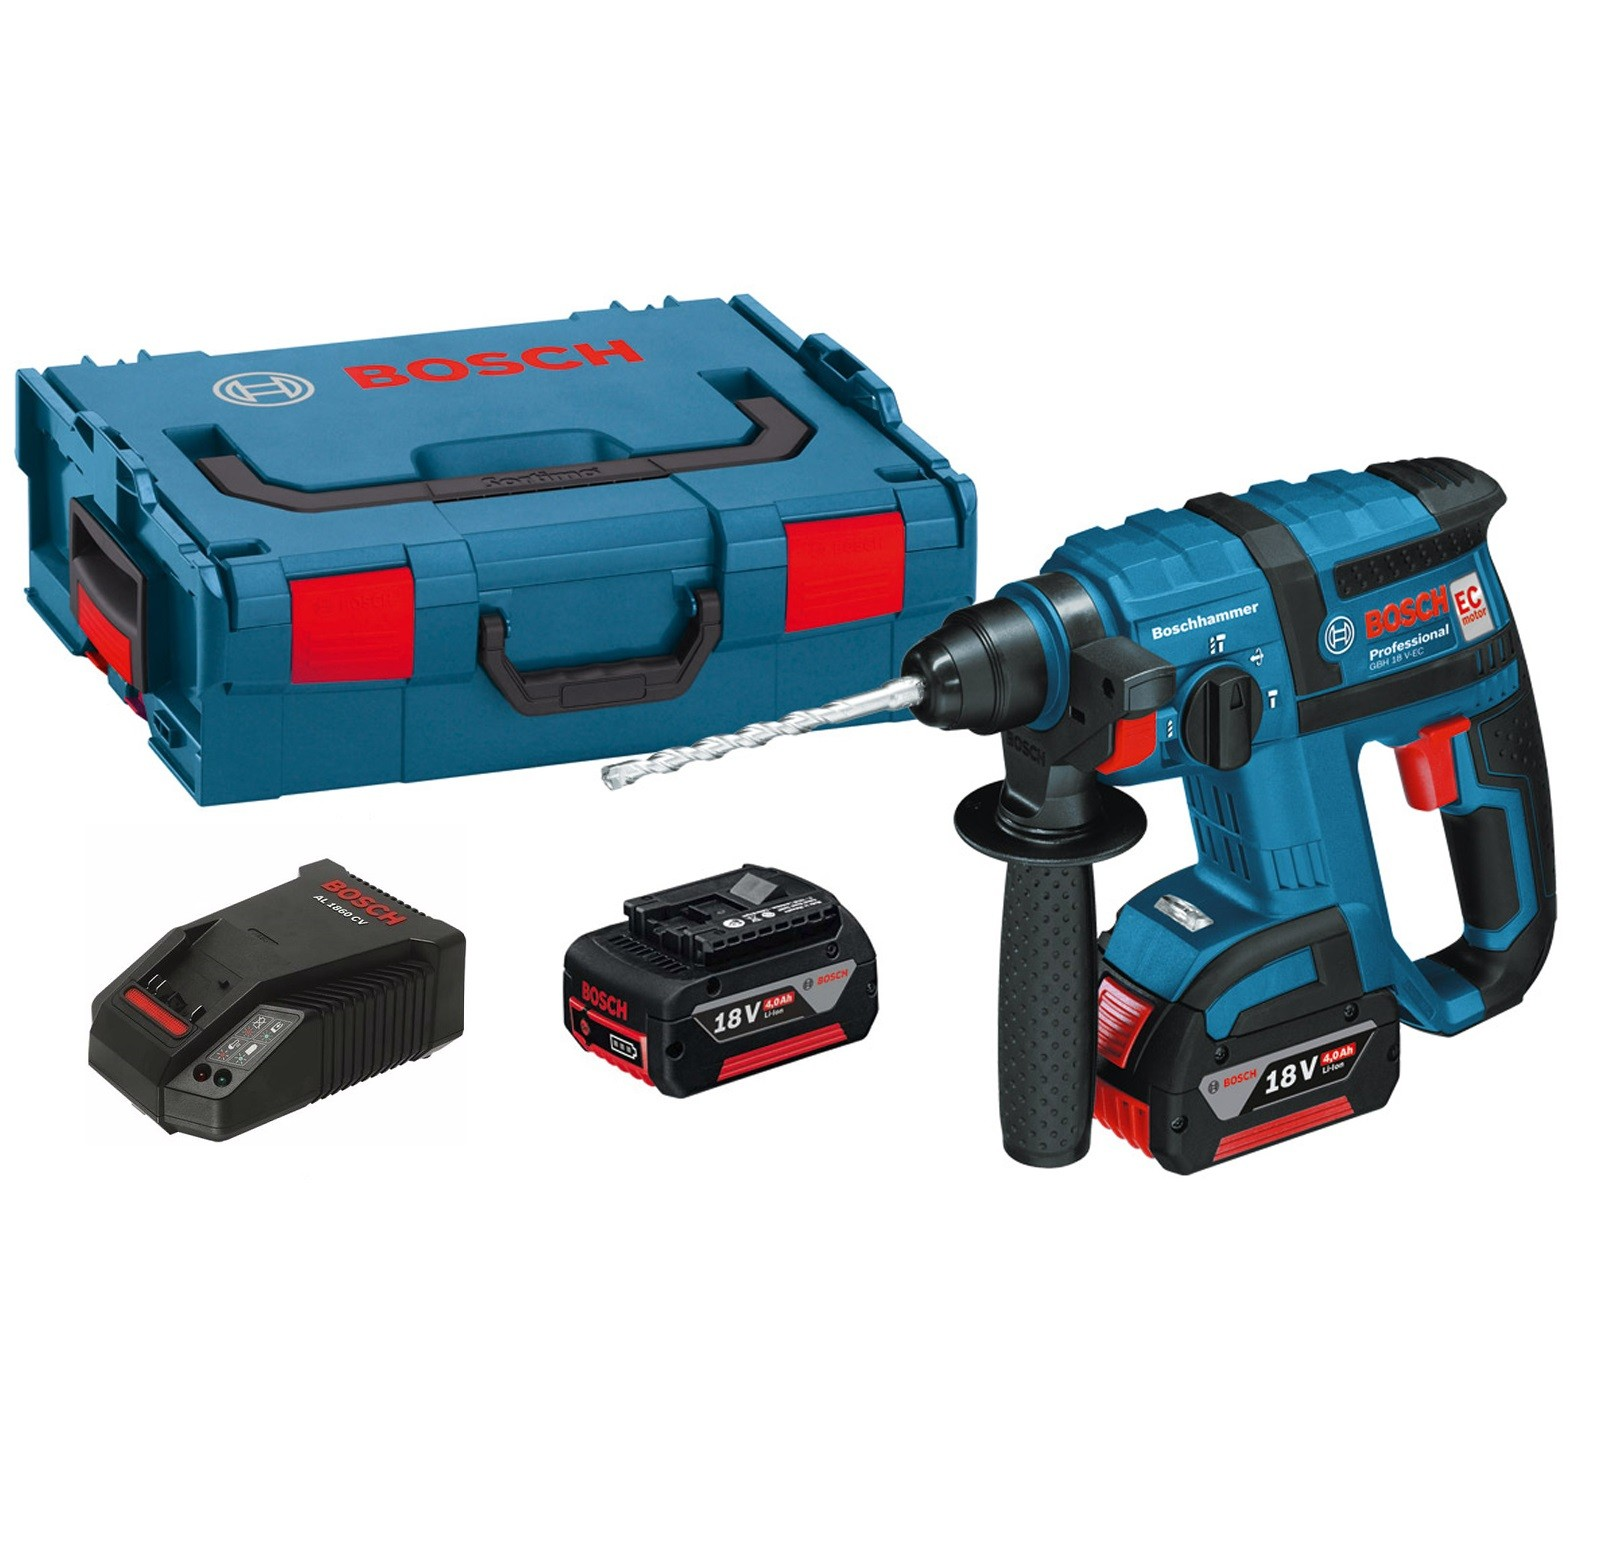 Bosch GBH 18 V-EC Brushless SDS+ Rotary Hammer inc 2x 4Ah Batts 0615990HH1